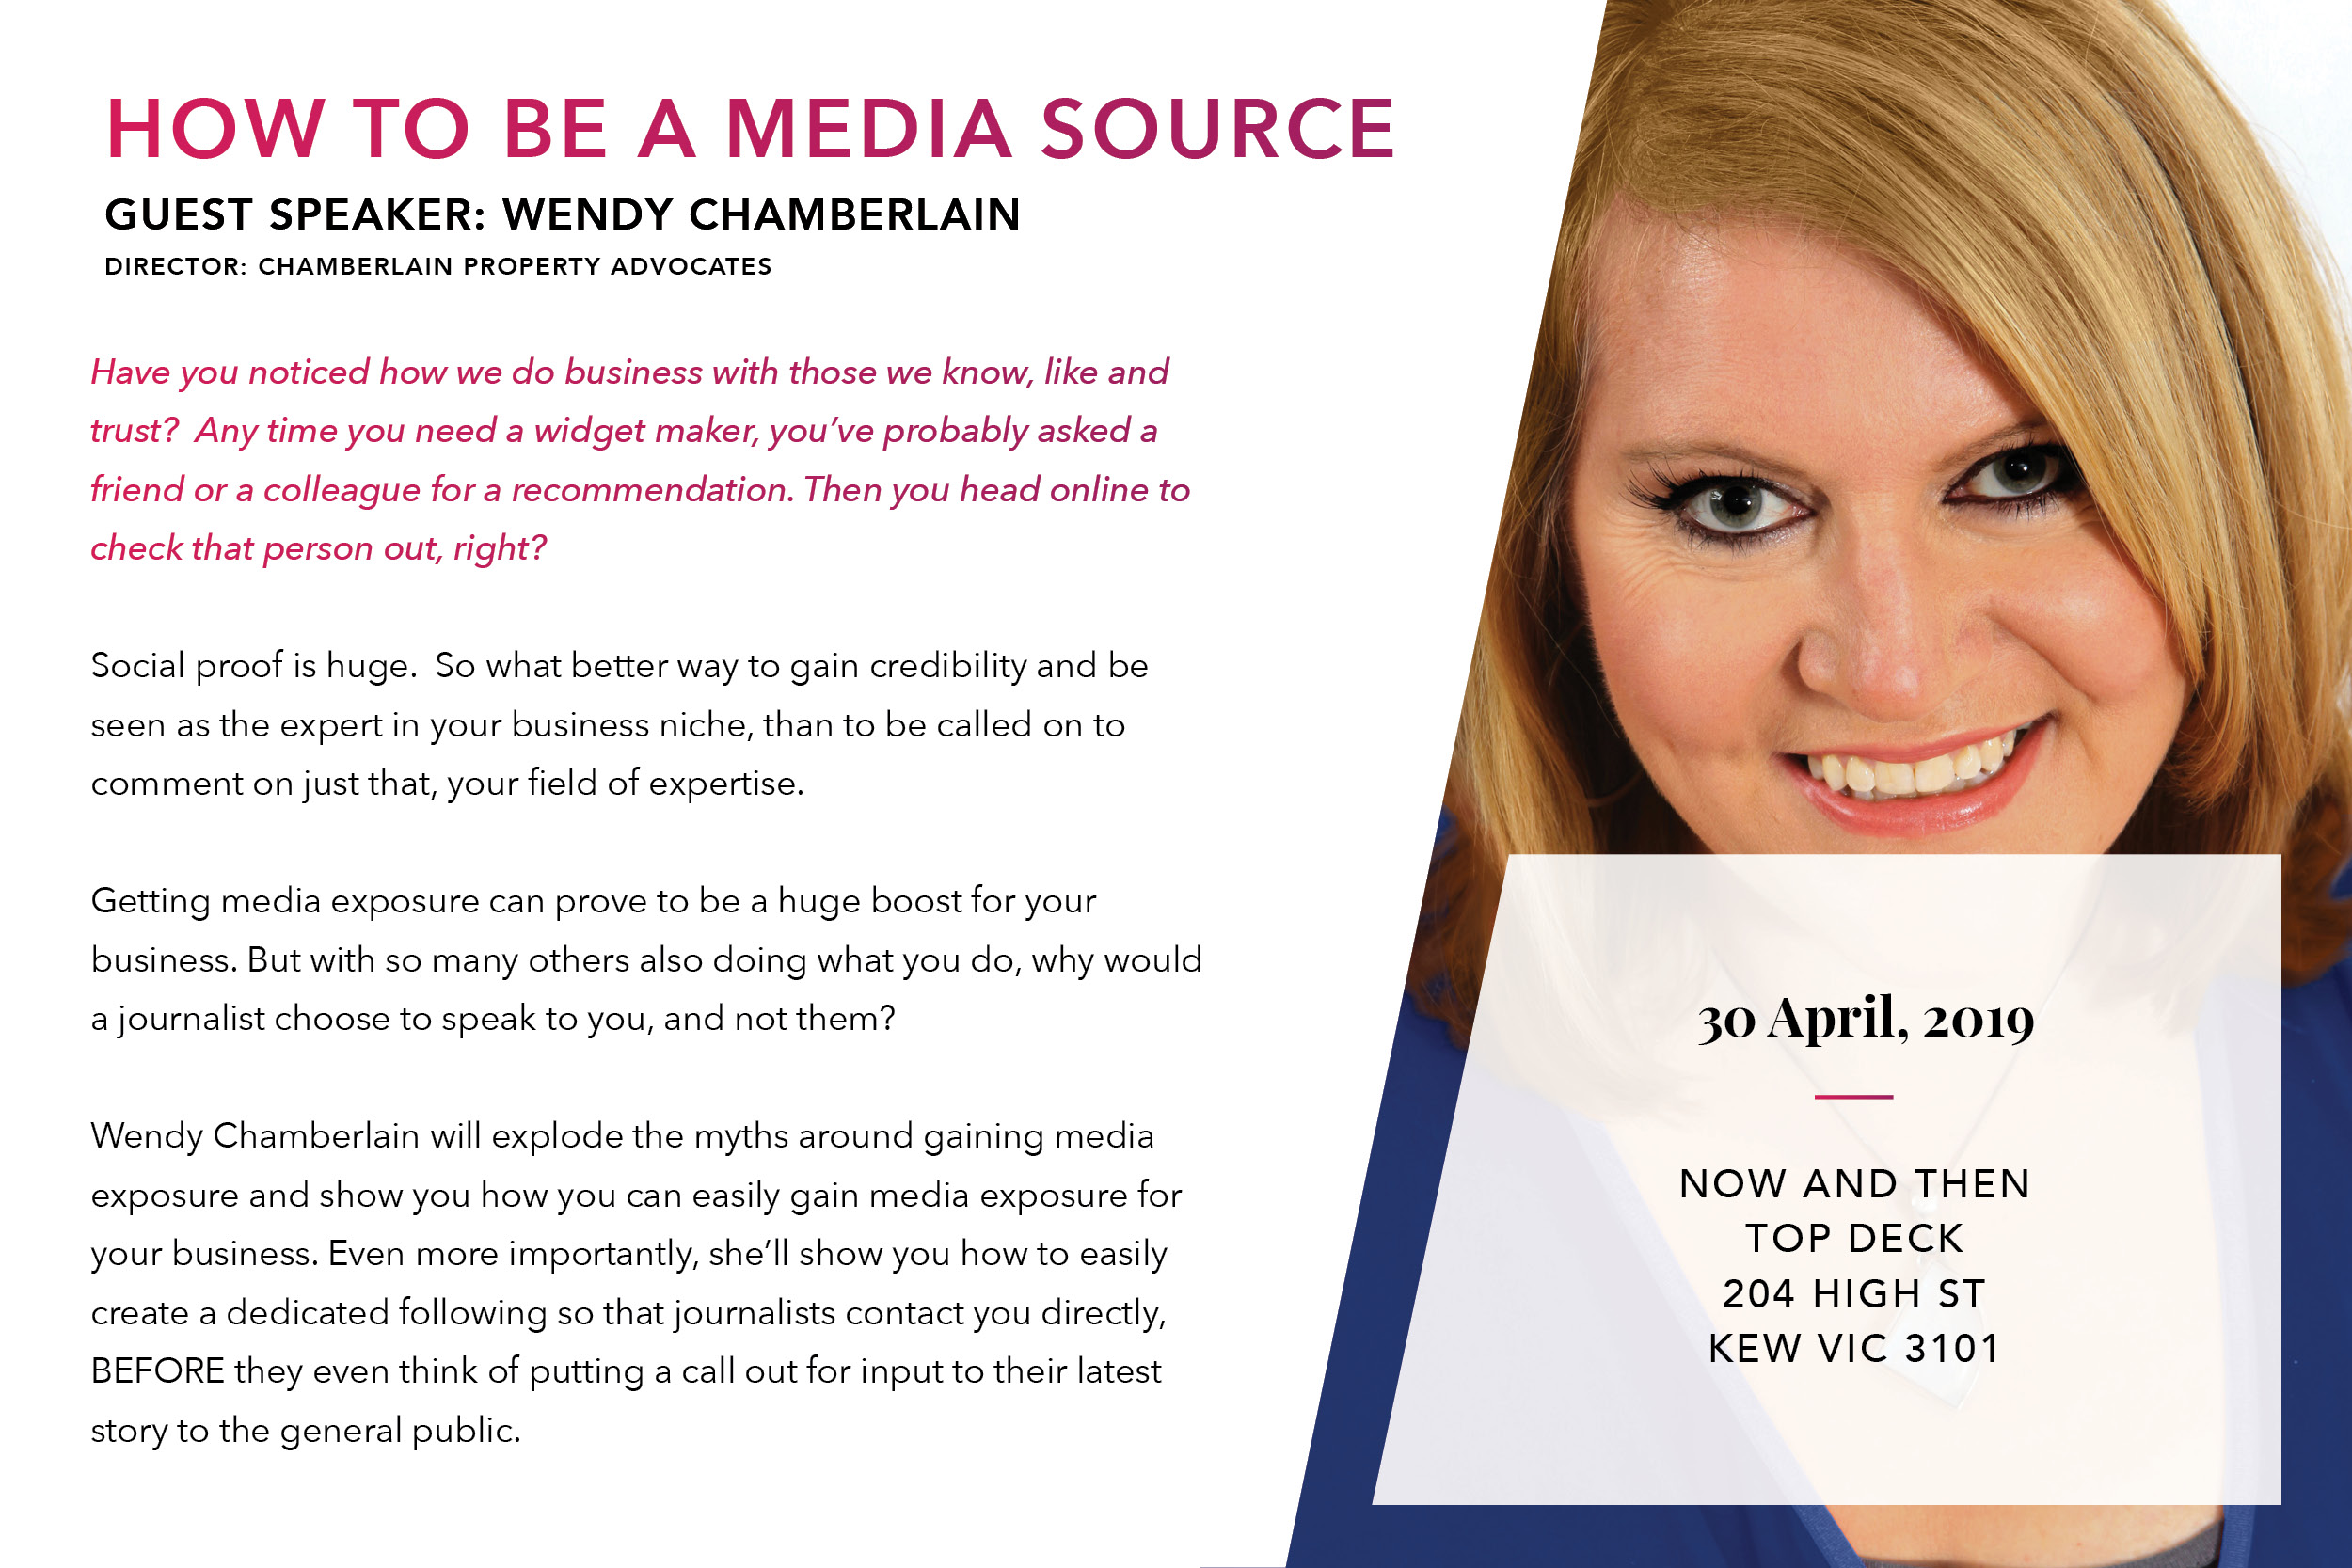 Wendy Chamberlain shares how to be seen as a media source